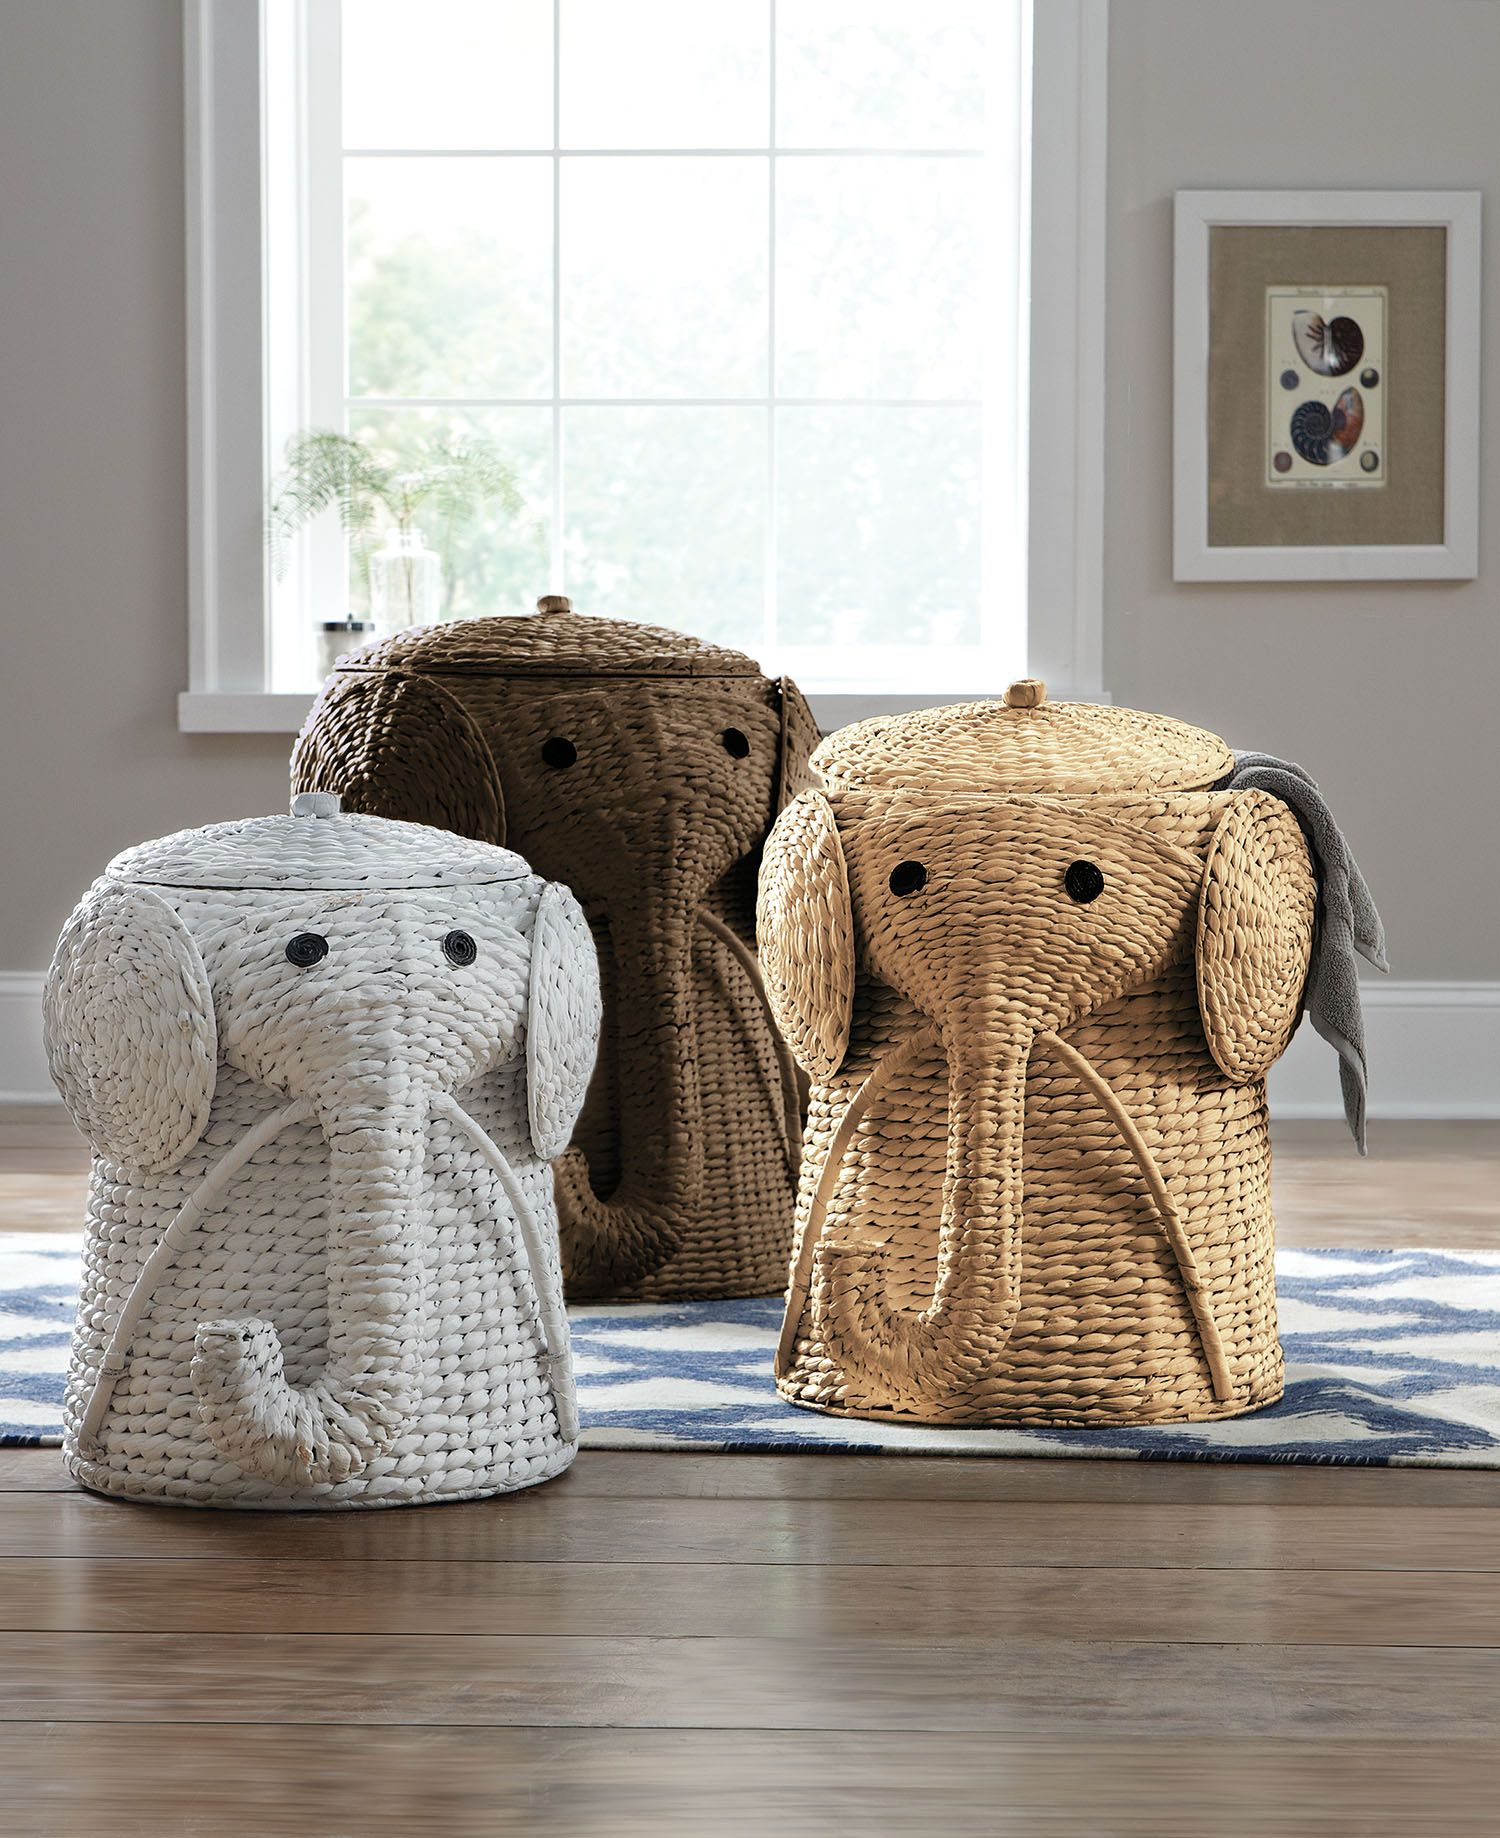 Animal Wicker Hamper Keep Dirty Laundry Hidden In A Fun Elephant Hamper